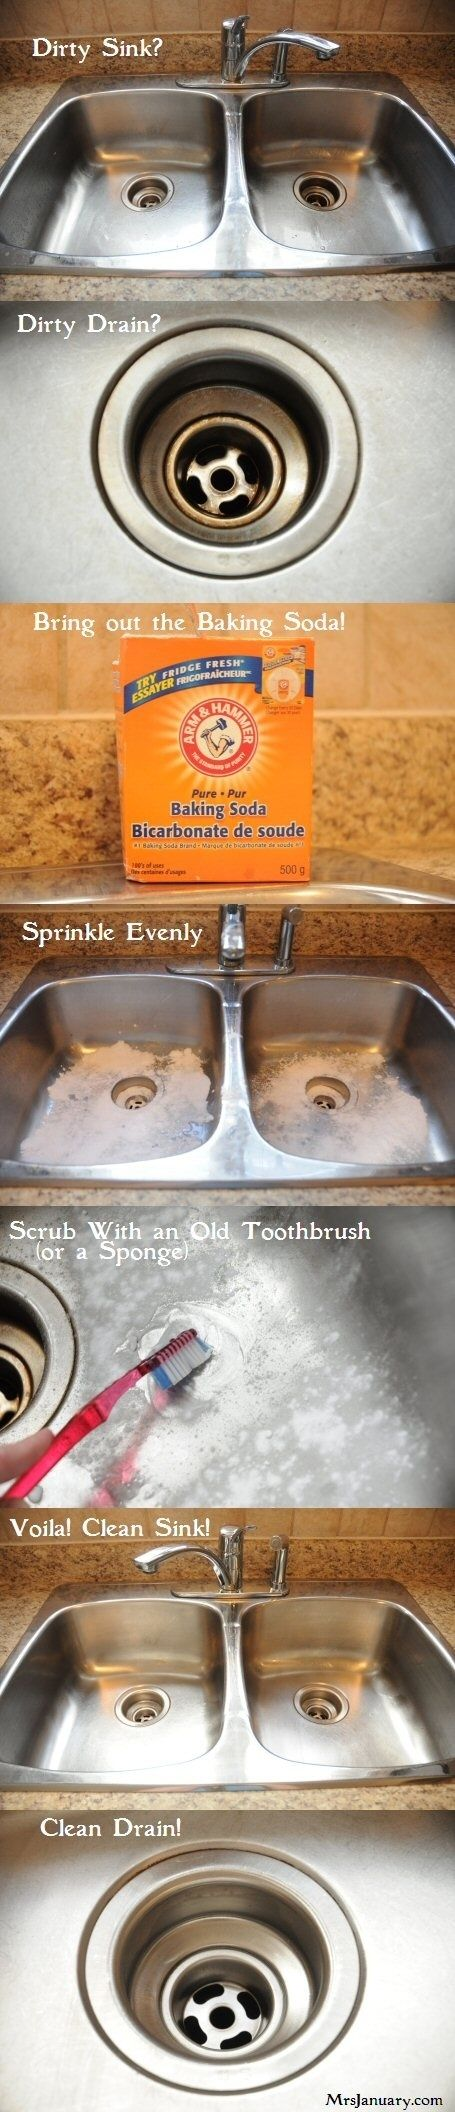 37 Ways to Give Your Kitchen a Deep Clean | Stainless steel sinks ...